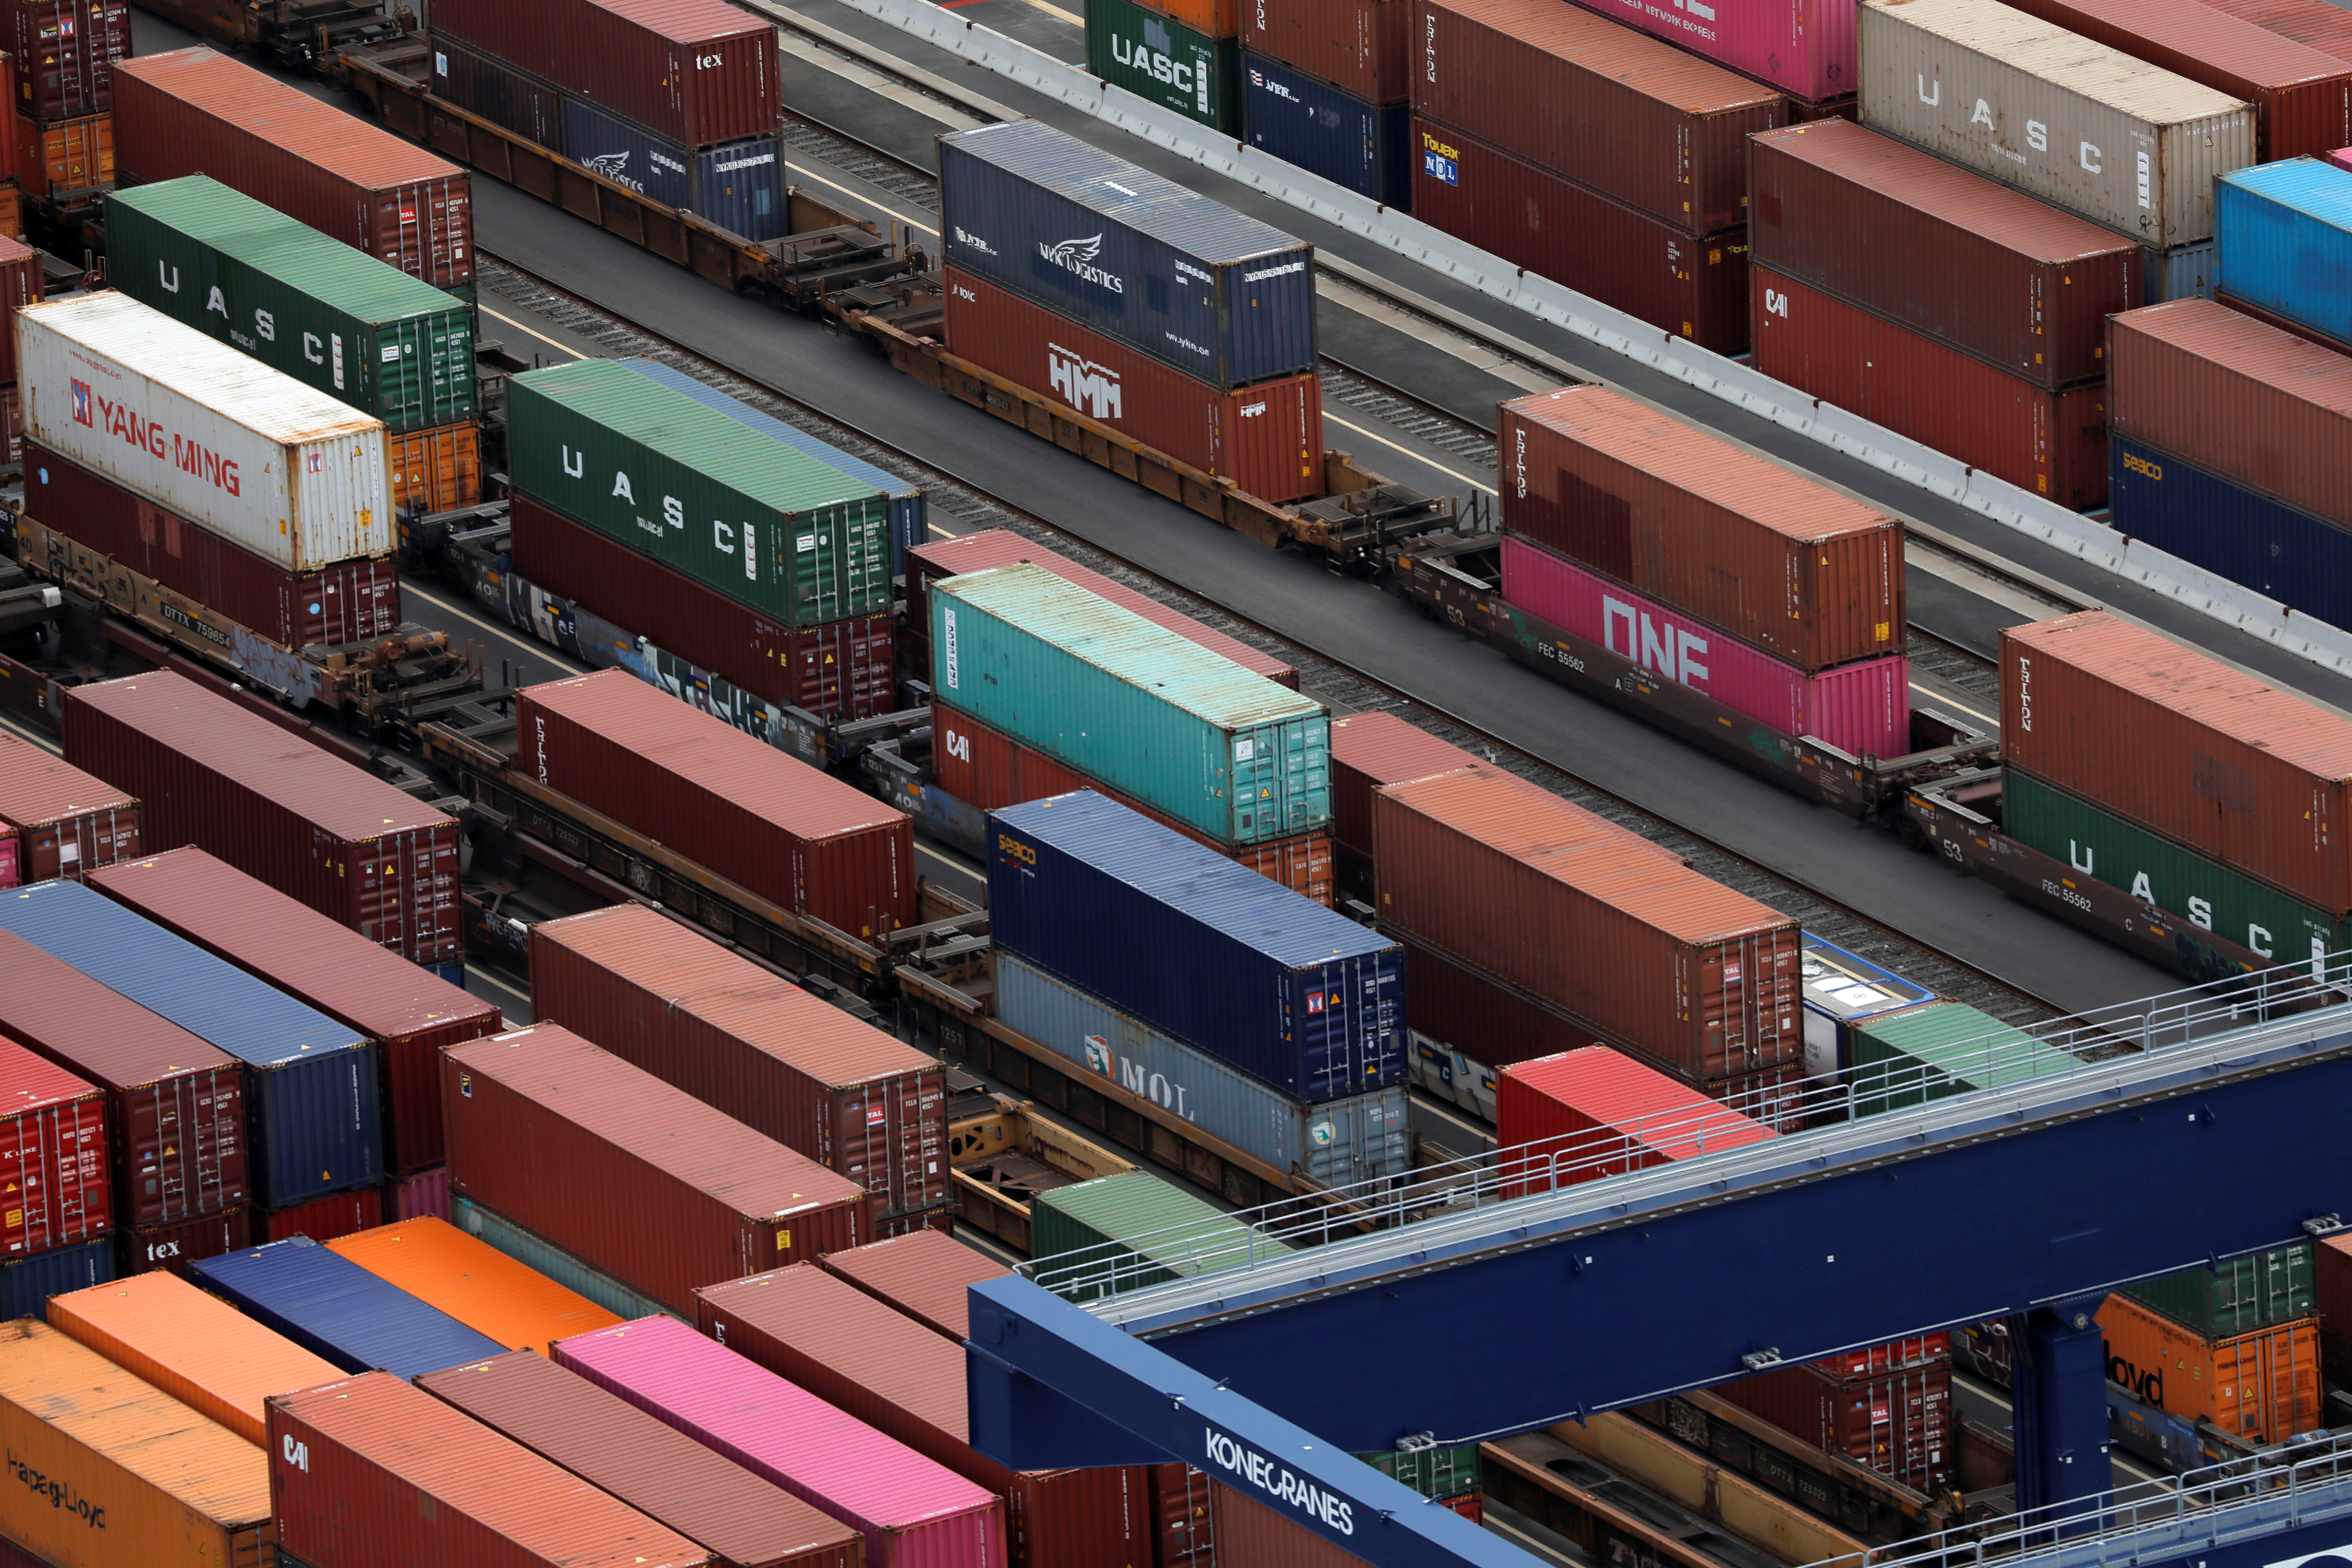 Shipping containers are seen at the port in Bayonne, New Jersey, U.S., August 21, 2021. REUTERS/Andrew Kelly/Files